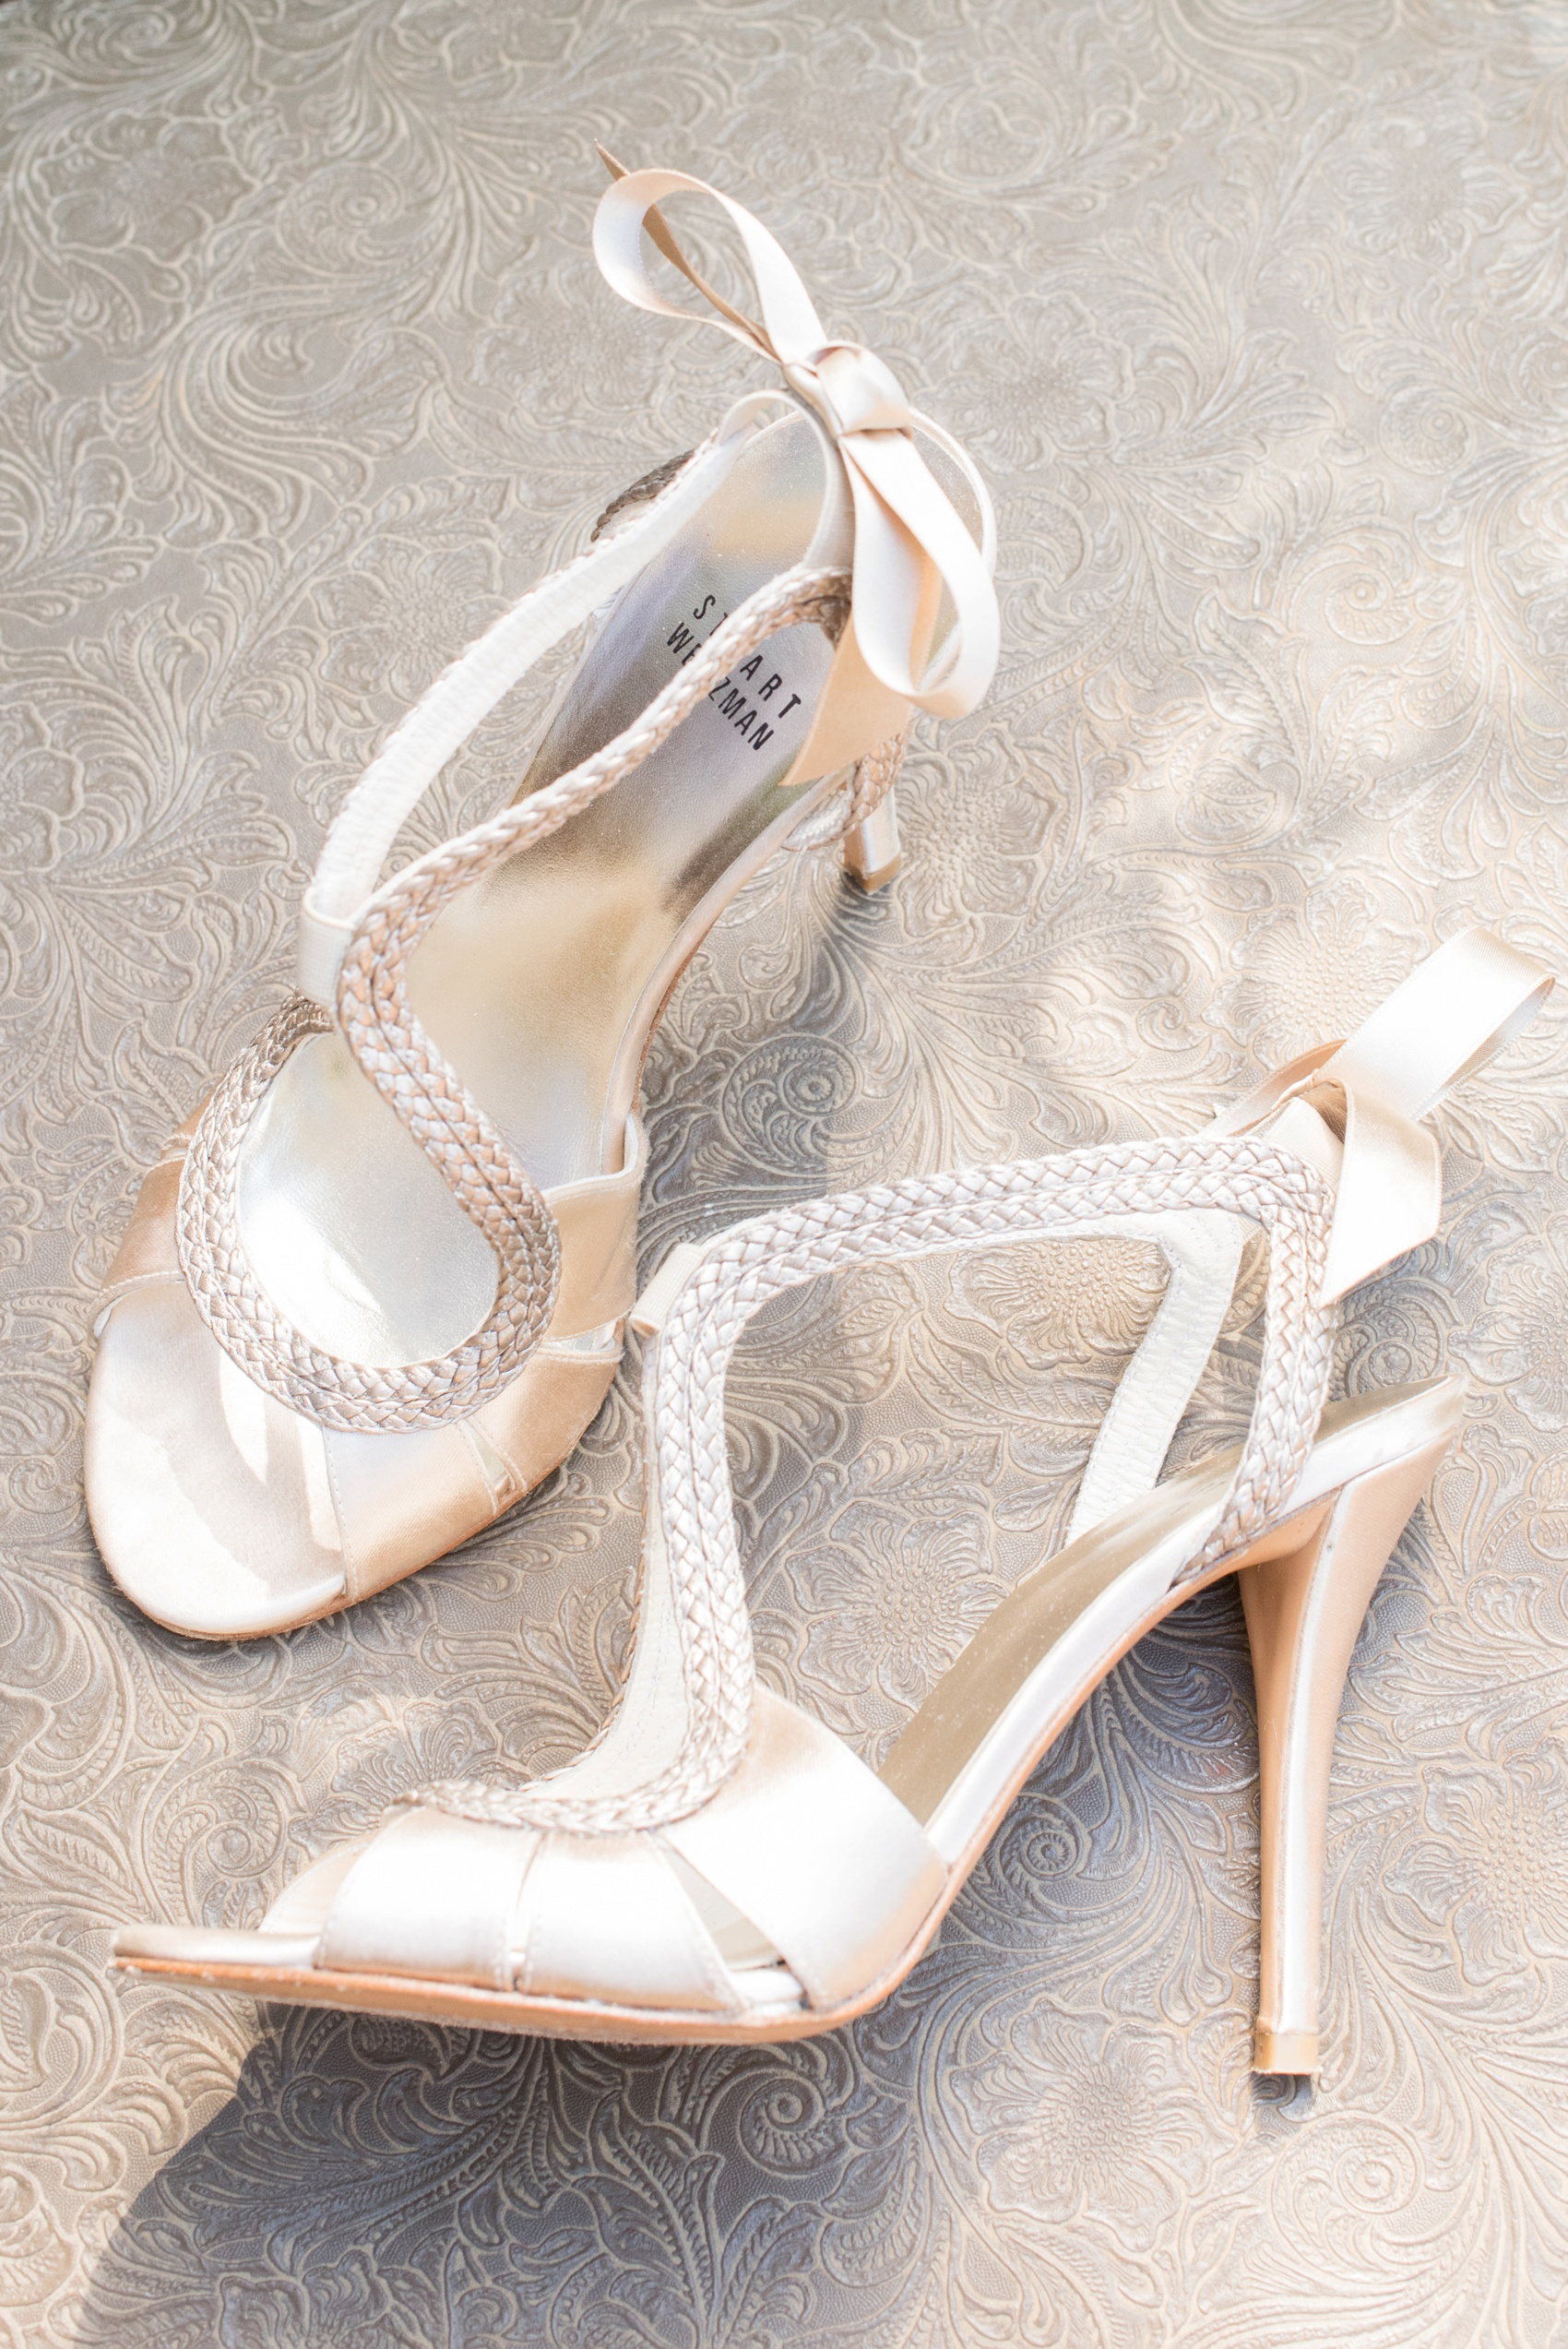 Estancia La Jolla wedding photography by Mikkel Paige Photography. Tropical wedding, California coast. Stuart Weitzman braided bow bridal heels.